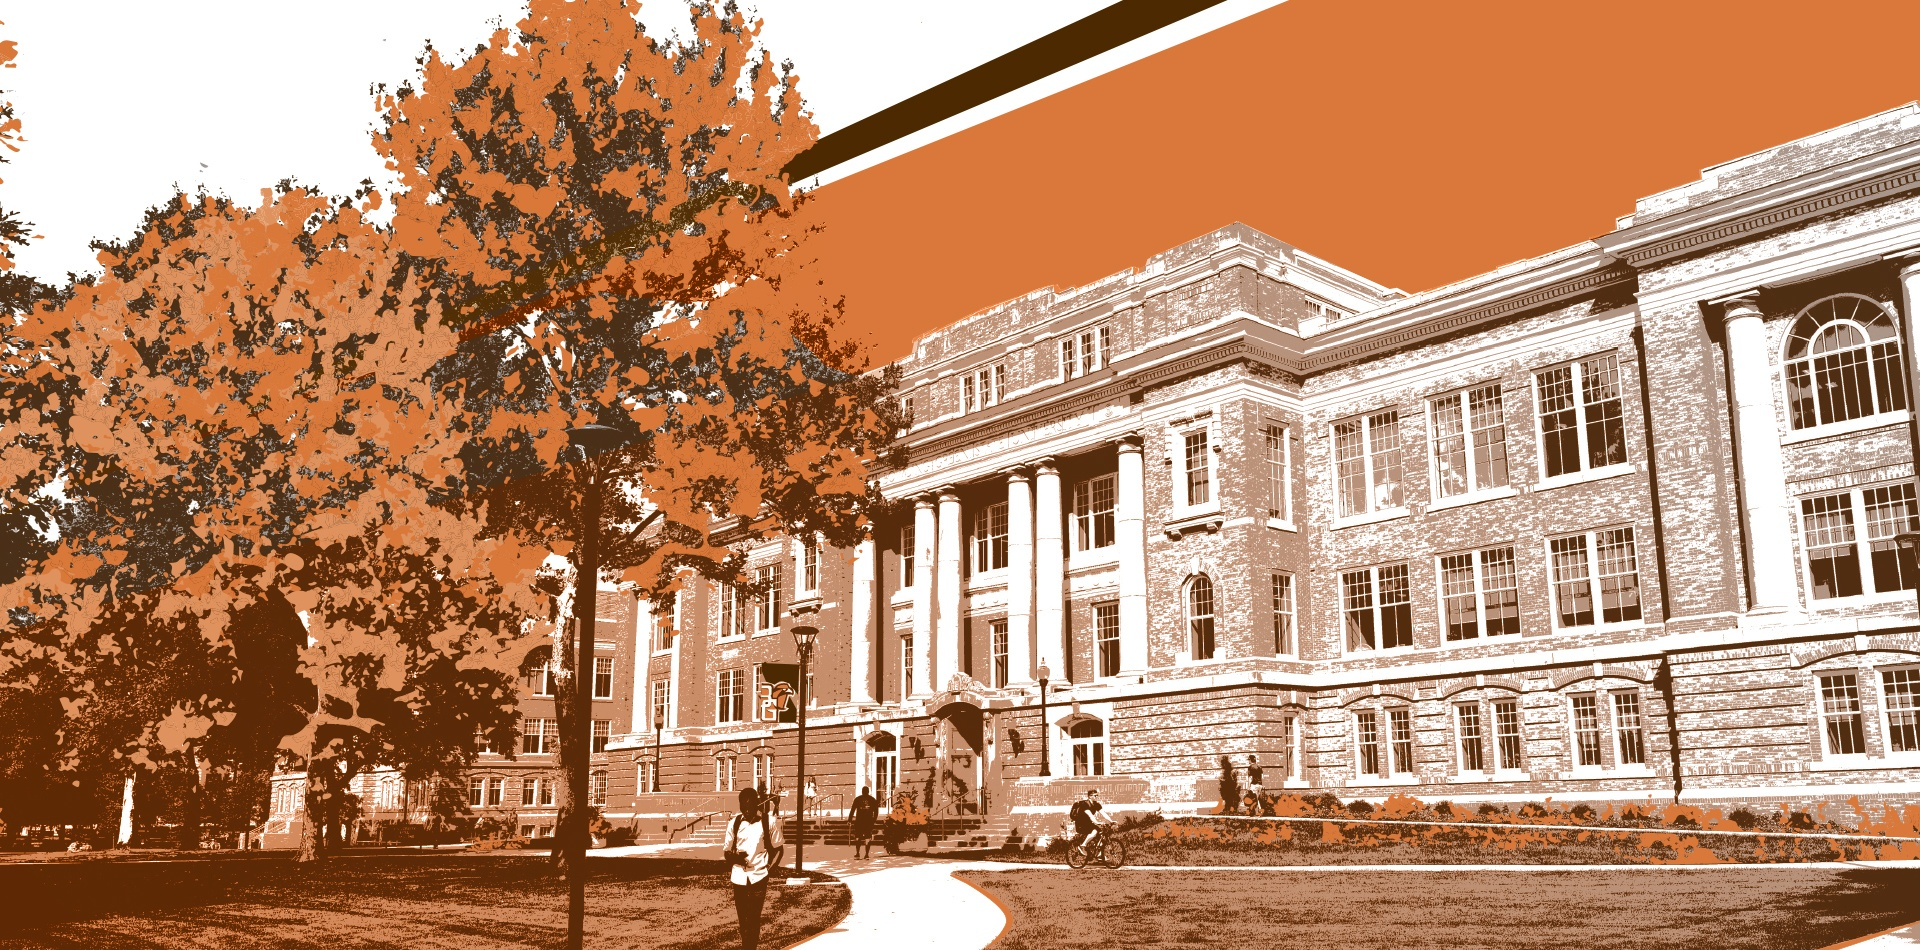 Illustration of University hall in orange and brown